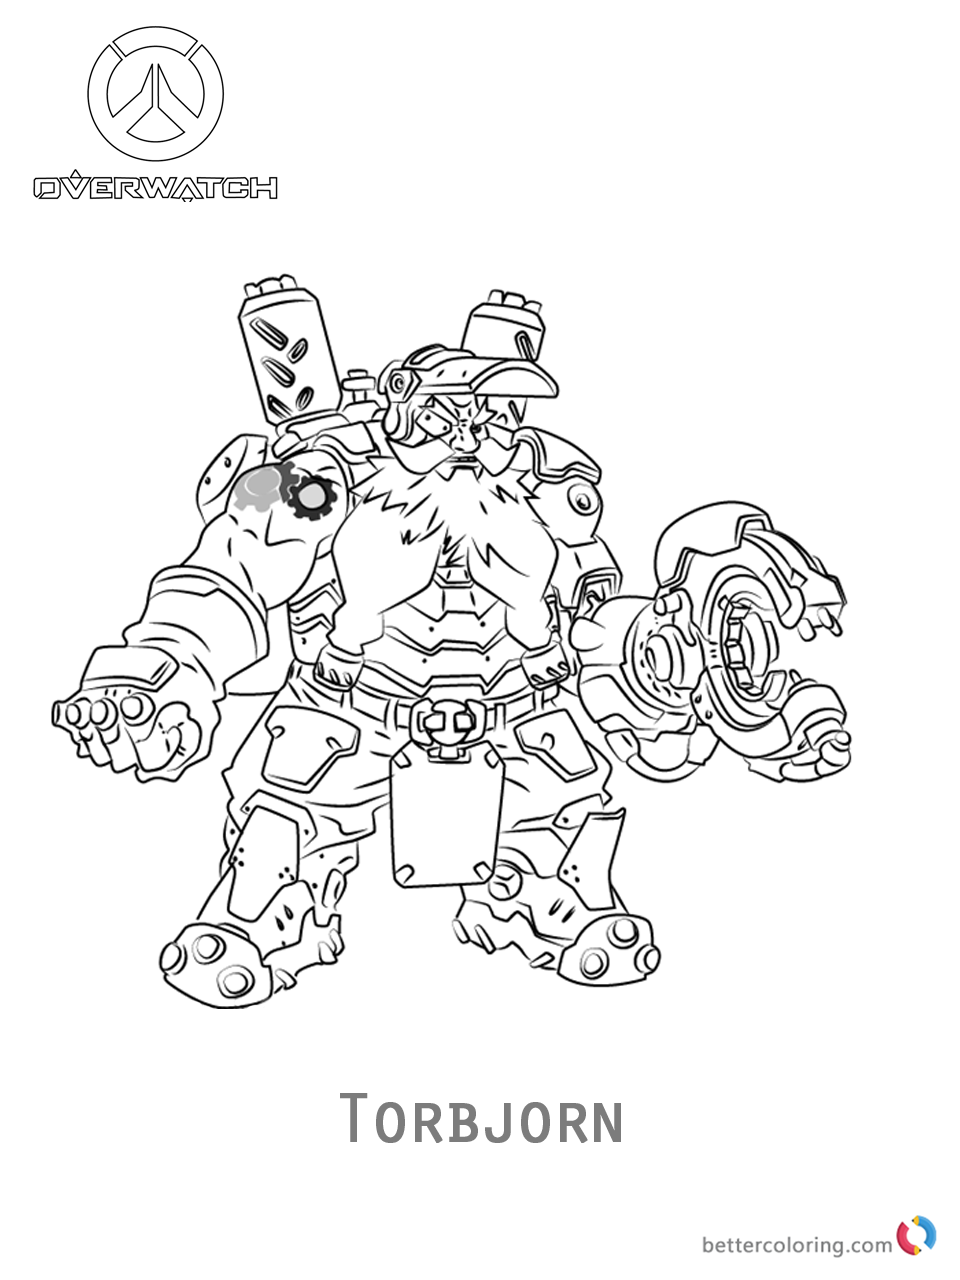 torbjorn from overwatch coloring pages free printable coloring pages. Black Bedroom Furniture Sets. Home Design Ideas